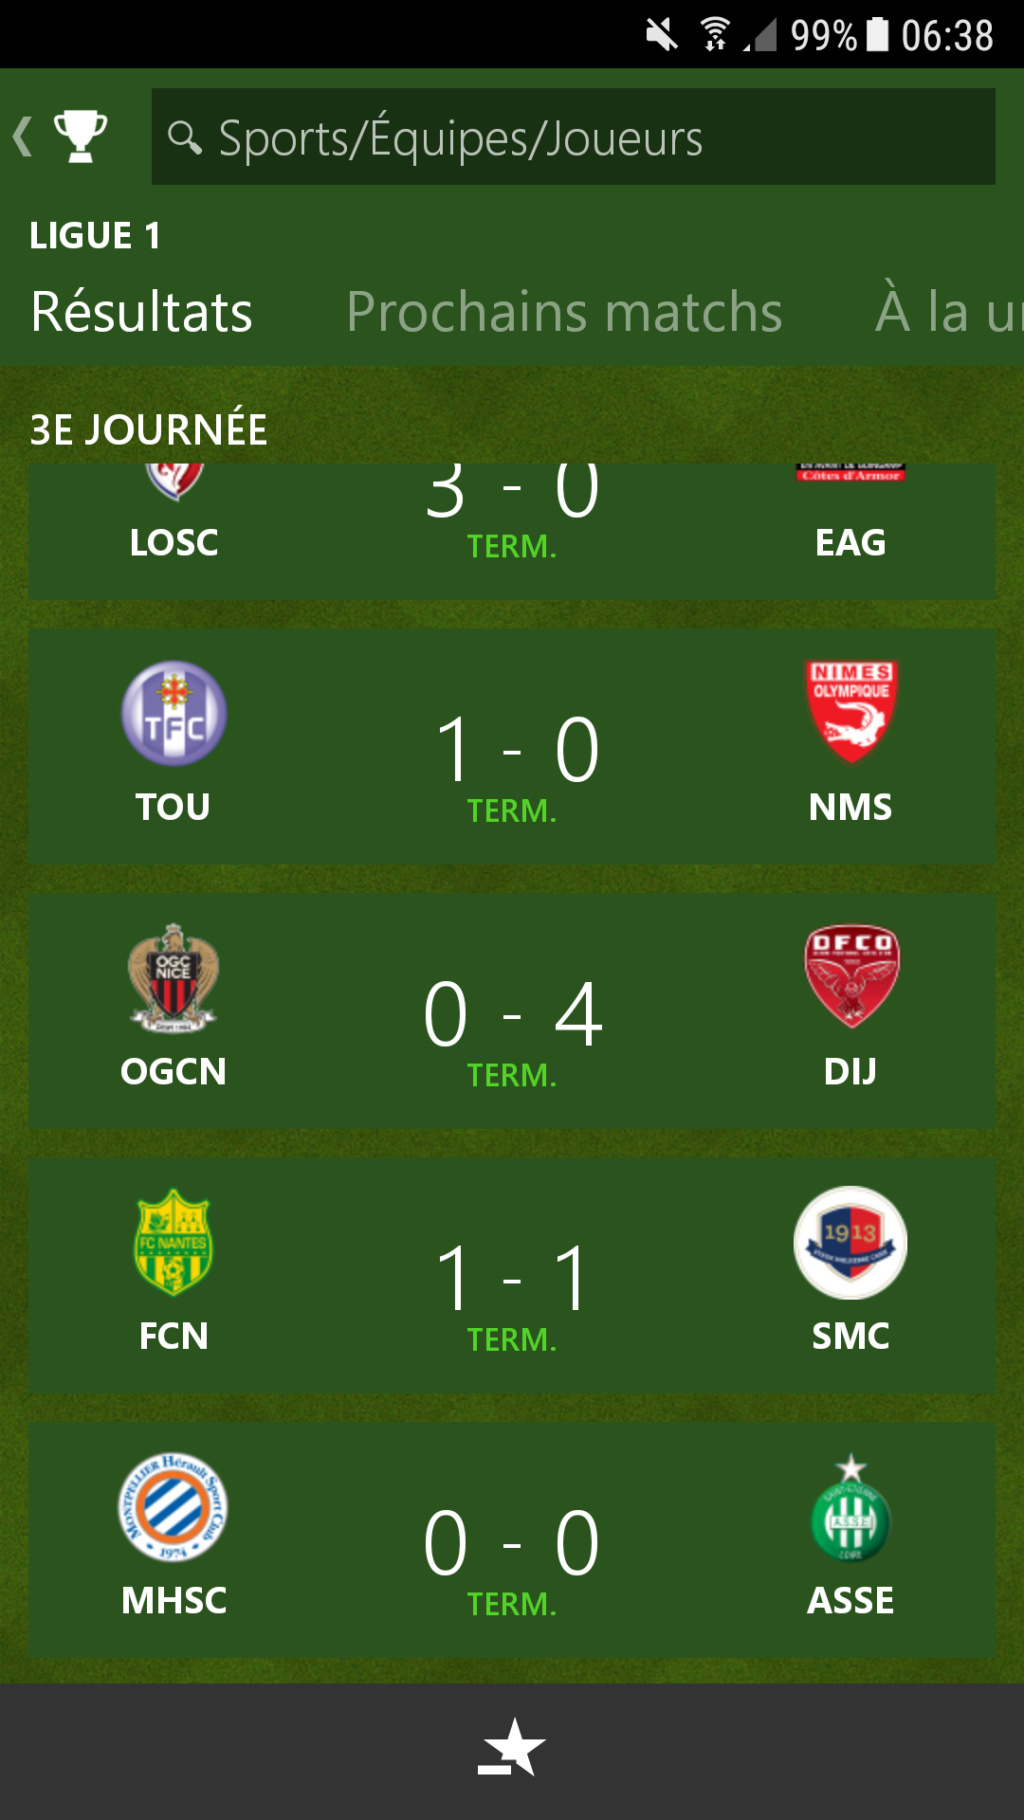 [FOOT] LE GFC, LE GAMOPAT FOOTBALL CLUB - Page 3 Screen18